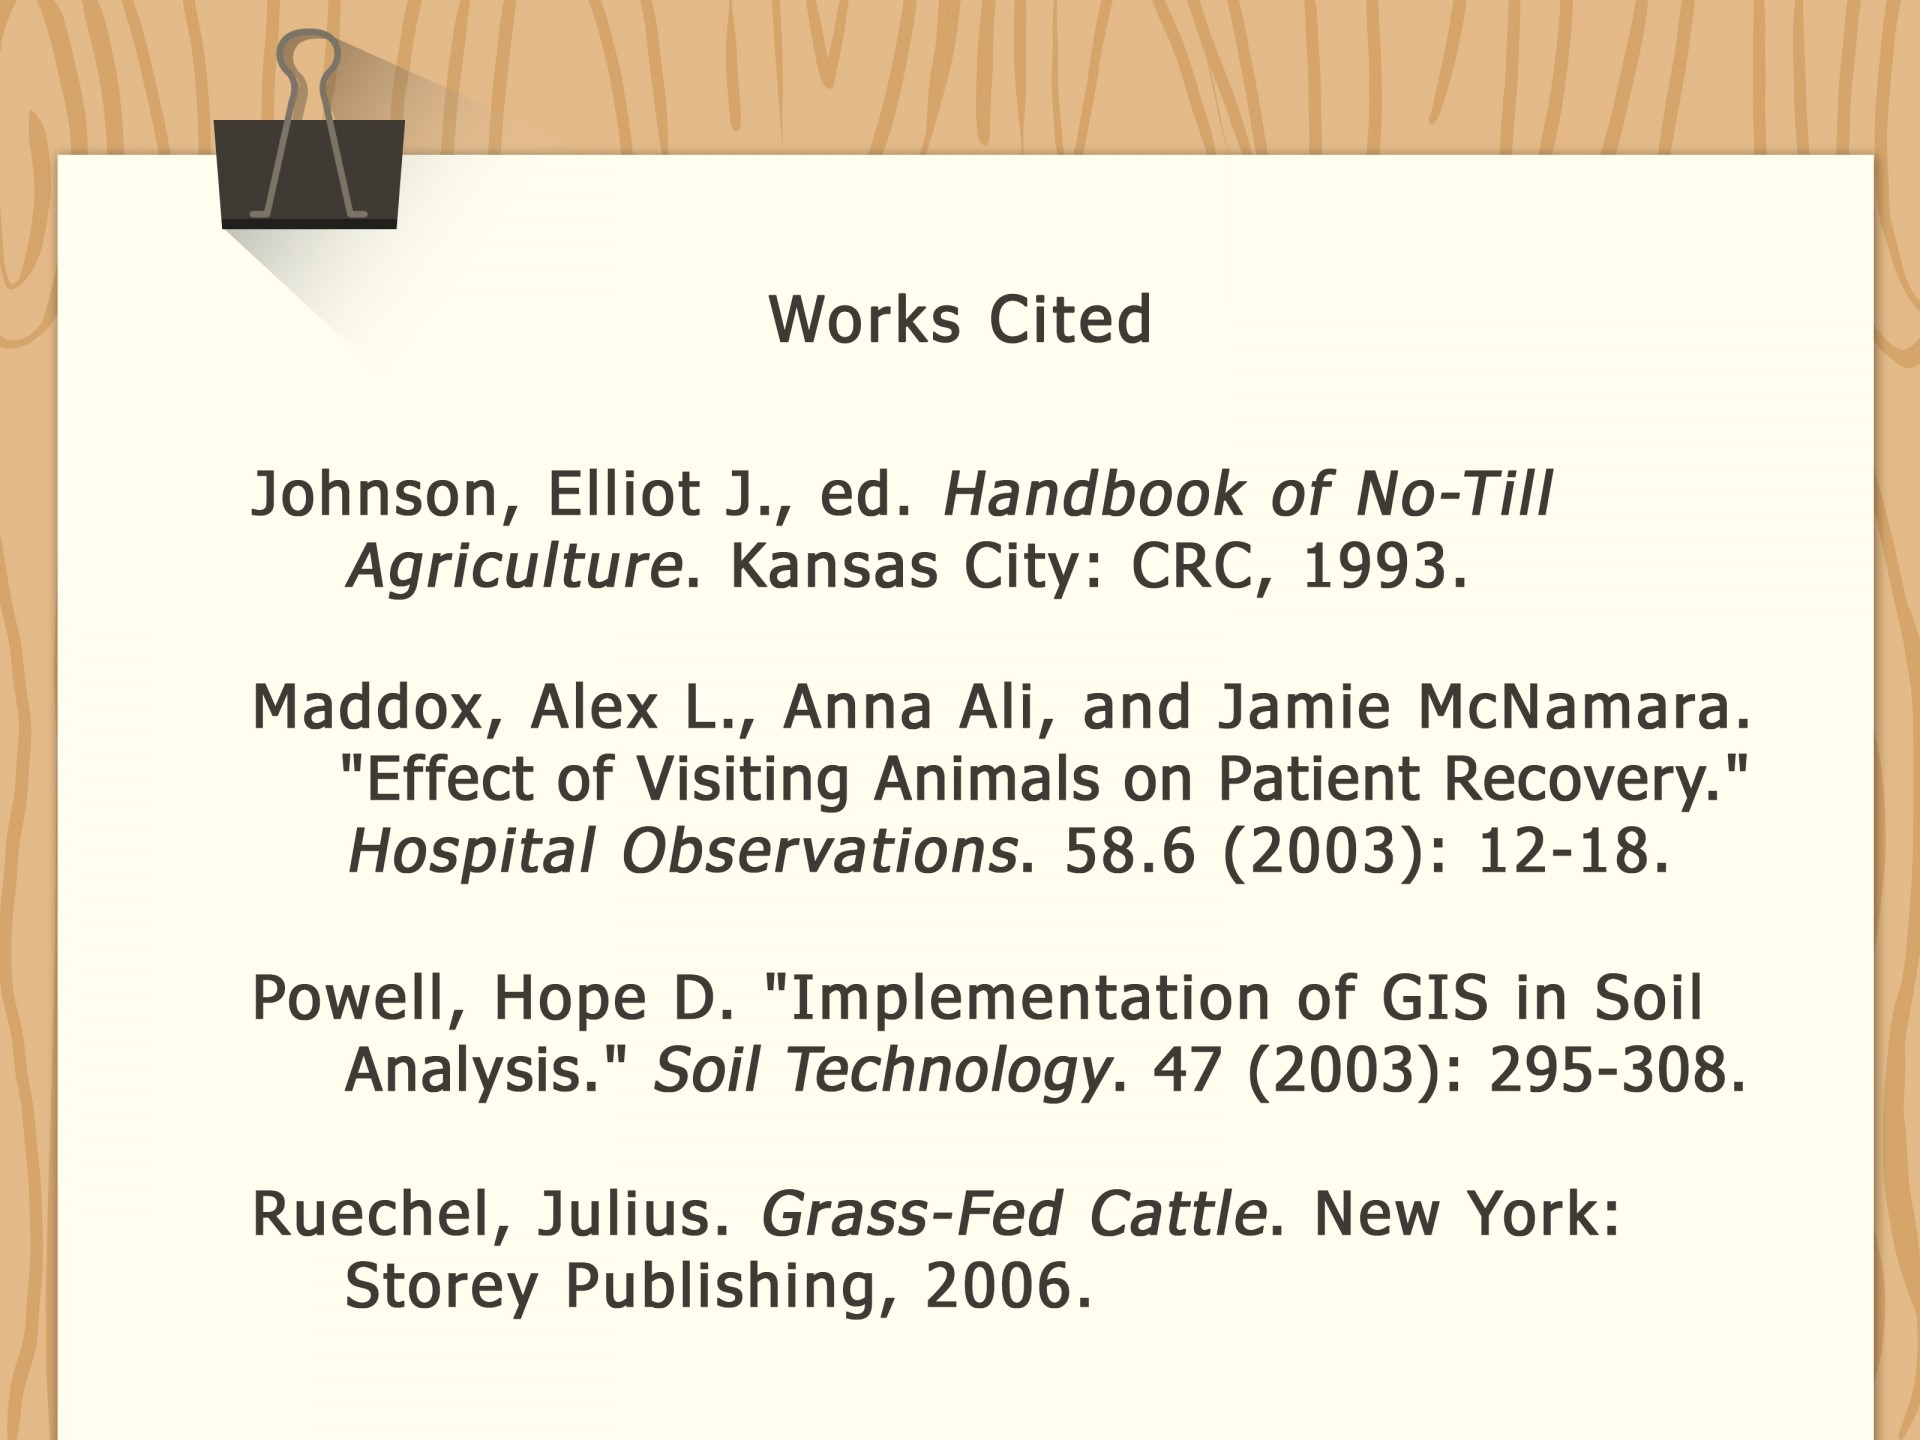 018 Cite Sources In Mlamat Step Version Research Paper How To Do Works Cited Unusual Mla For A Page 1920